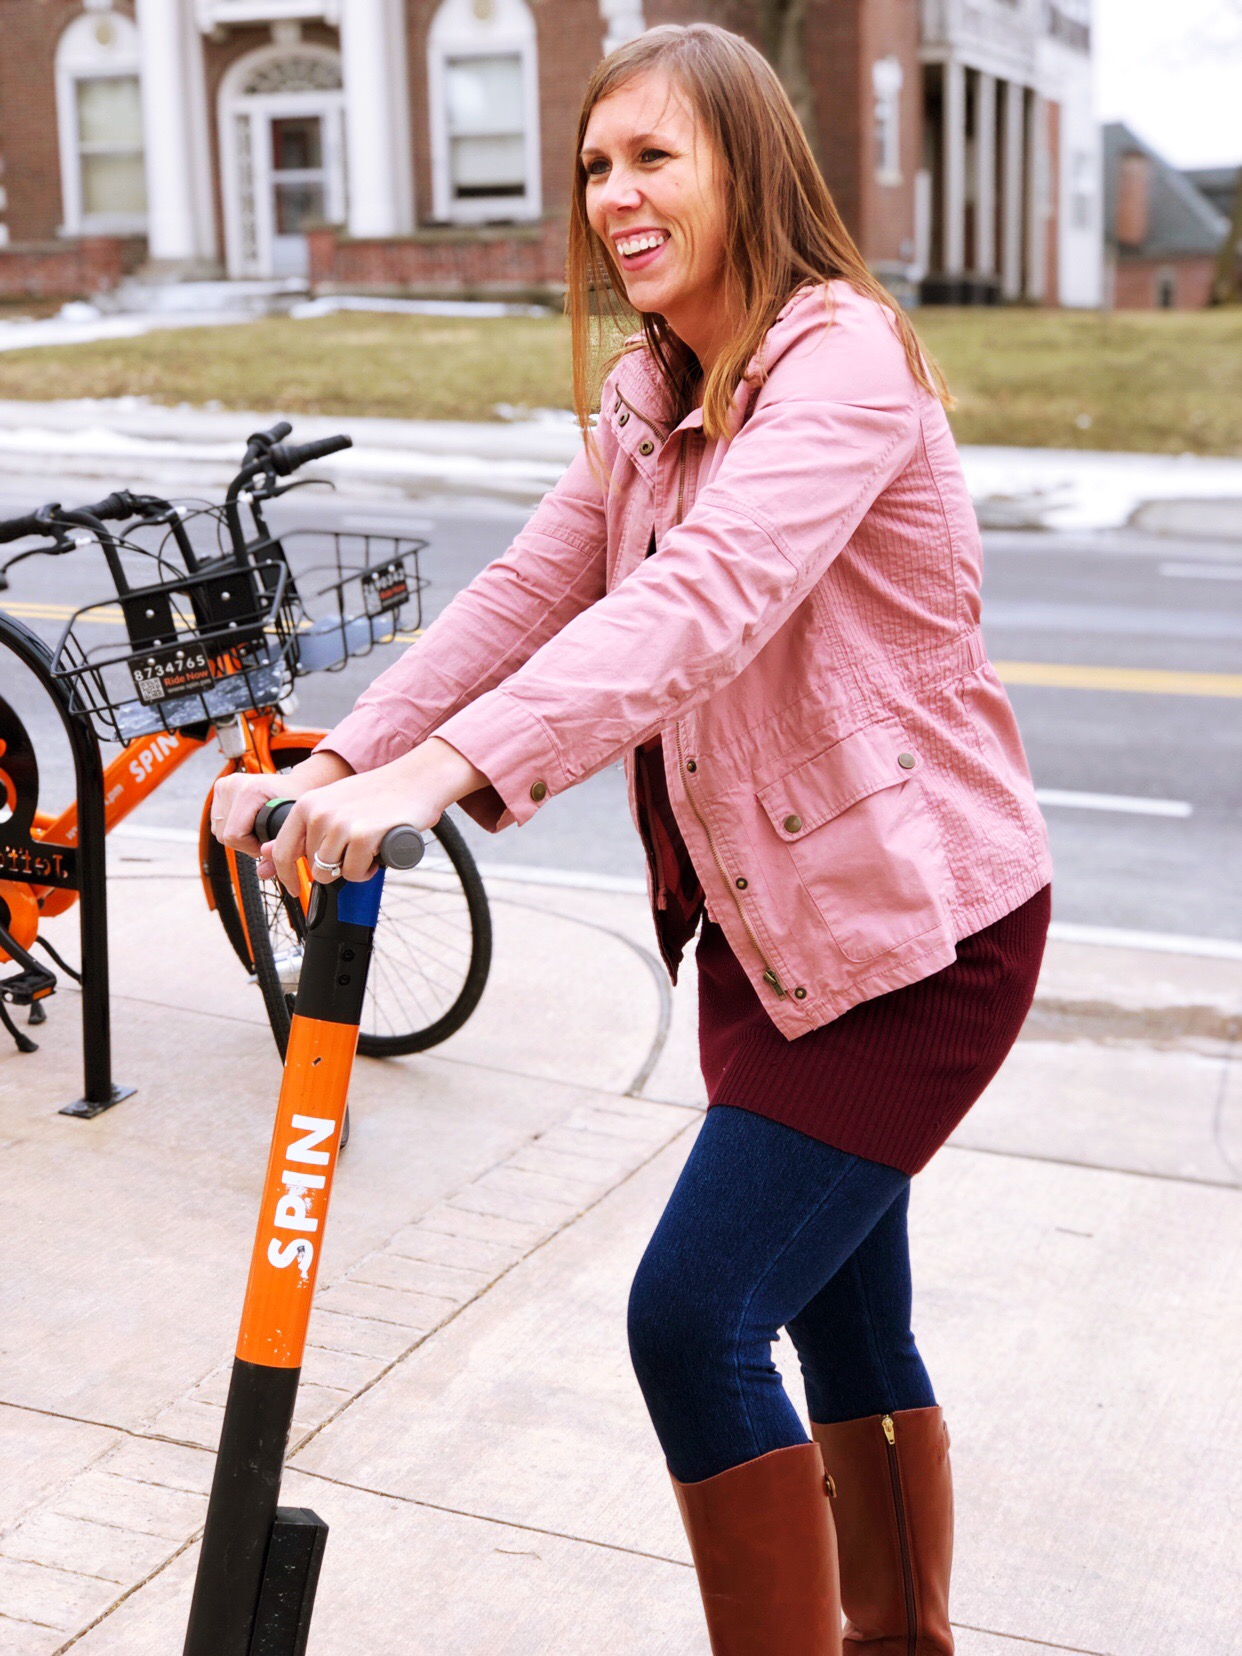 SPIN-Scooter-Jefferson-City-Ashley-Varner